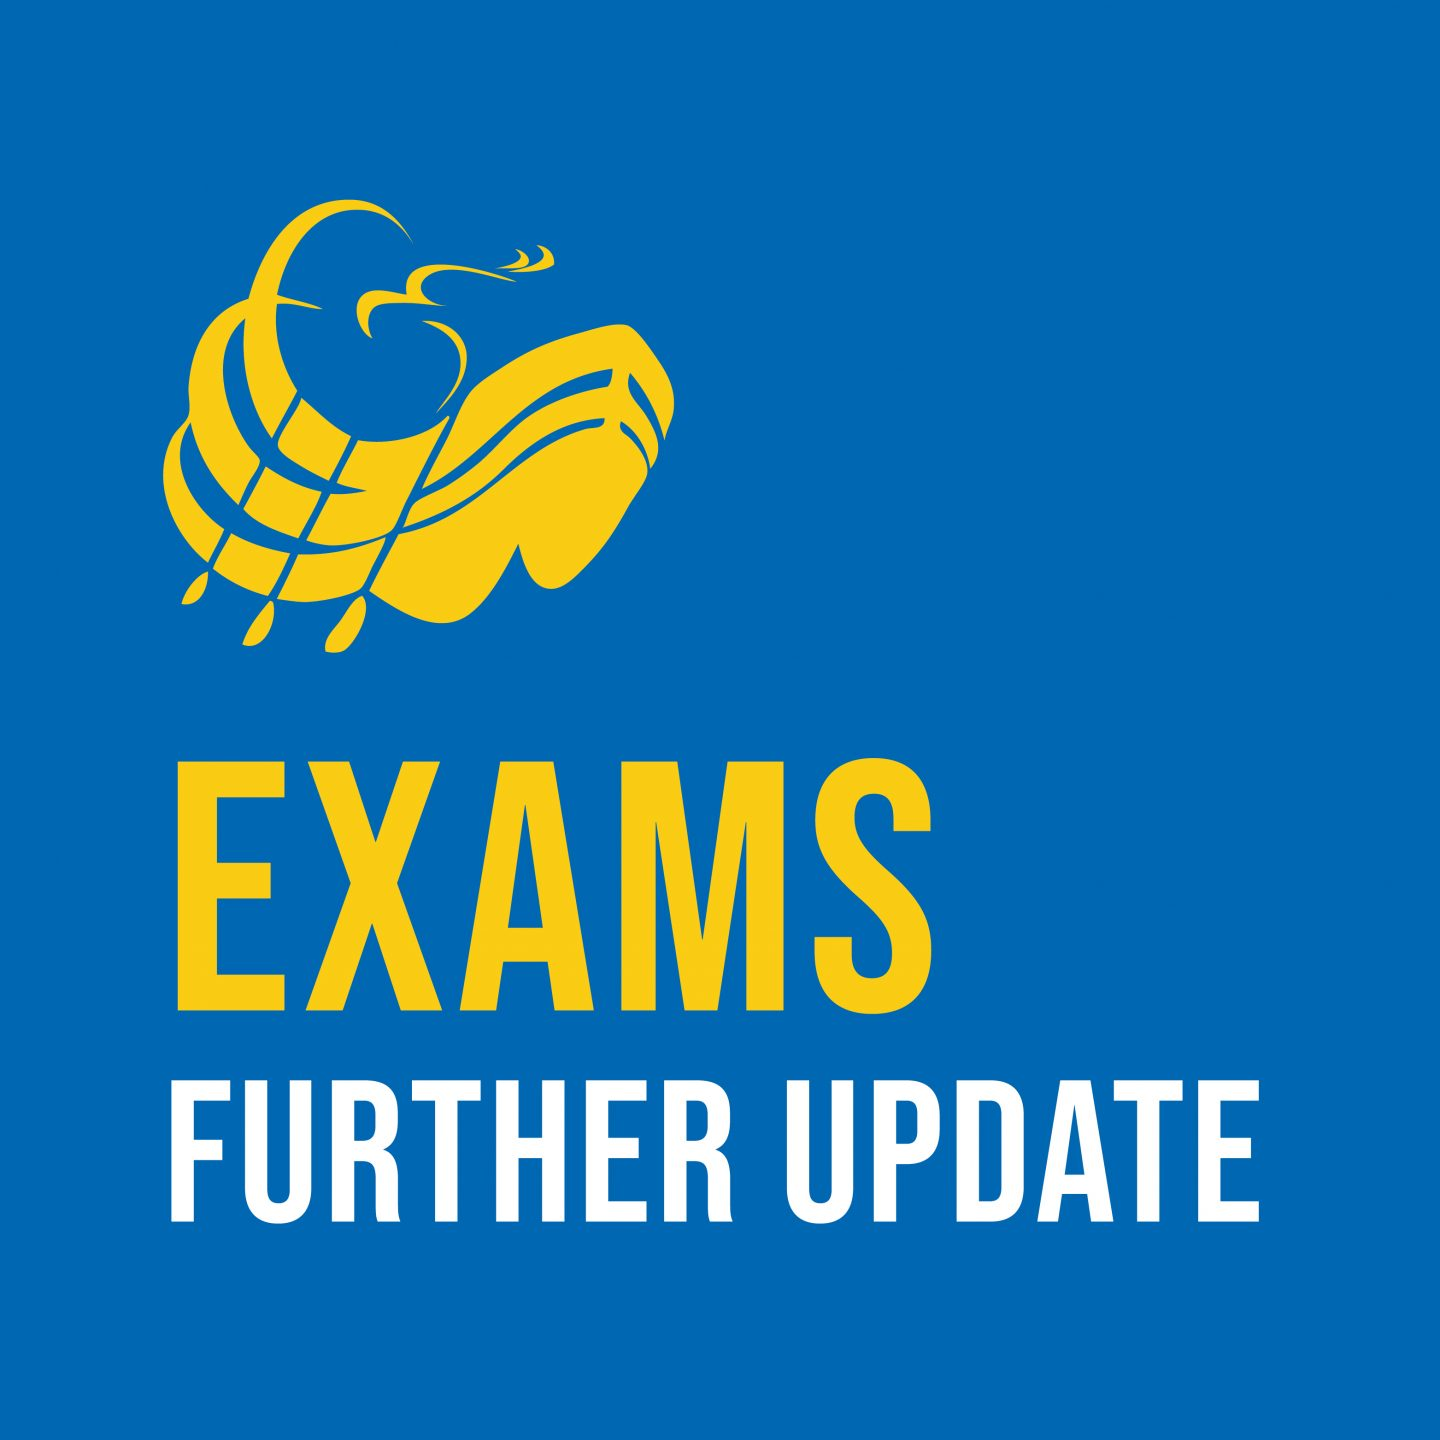 Exams Further Update